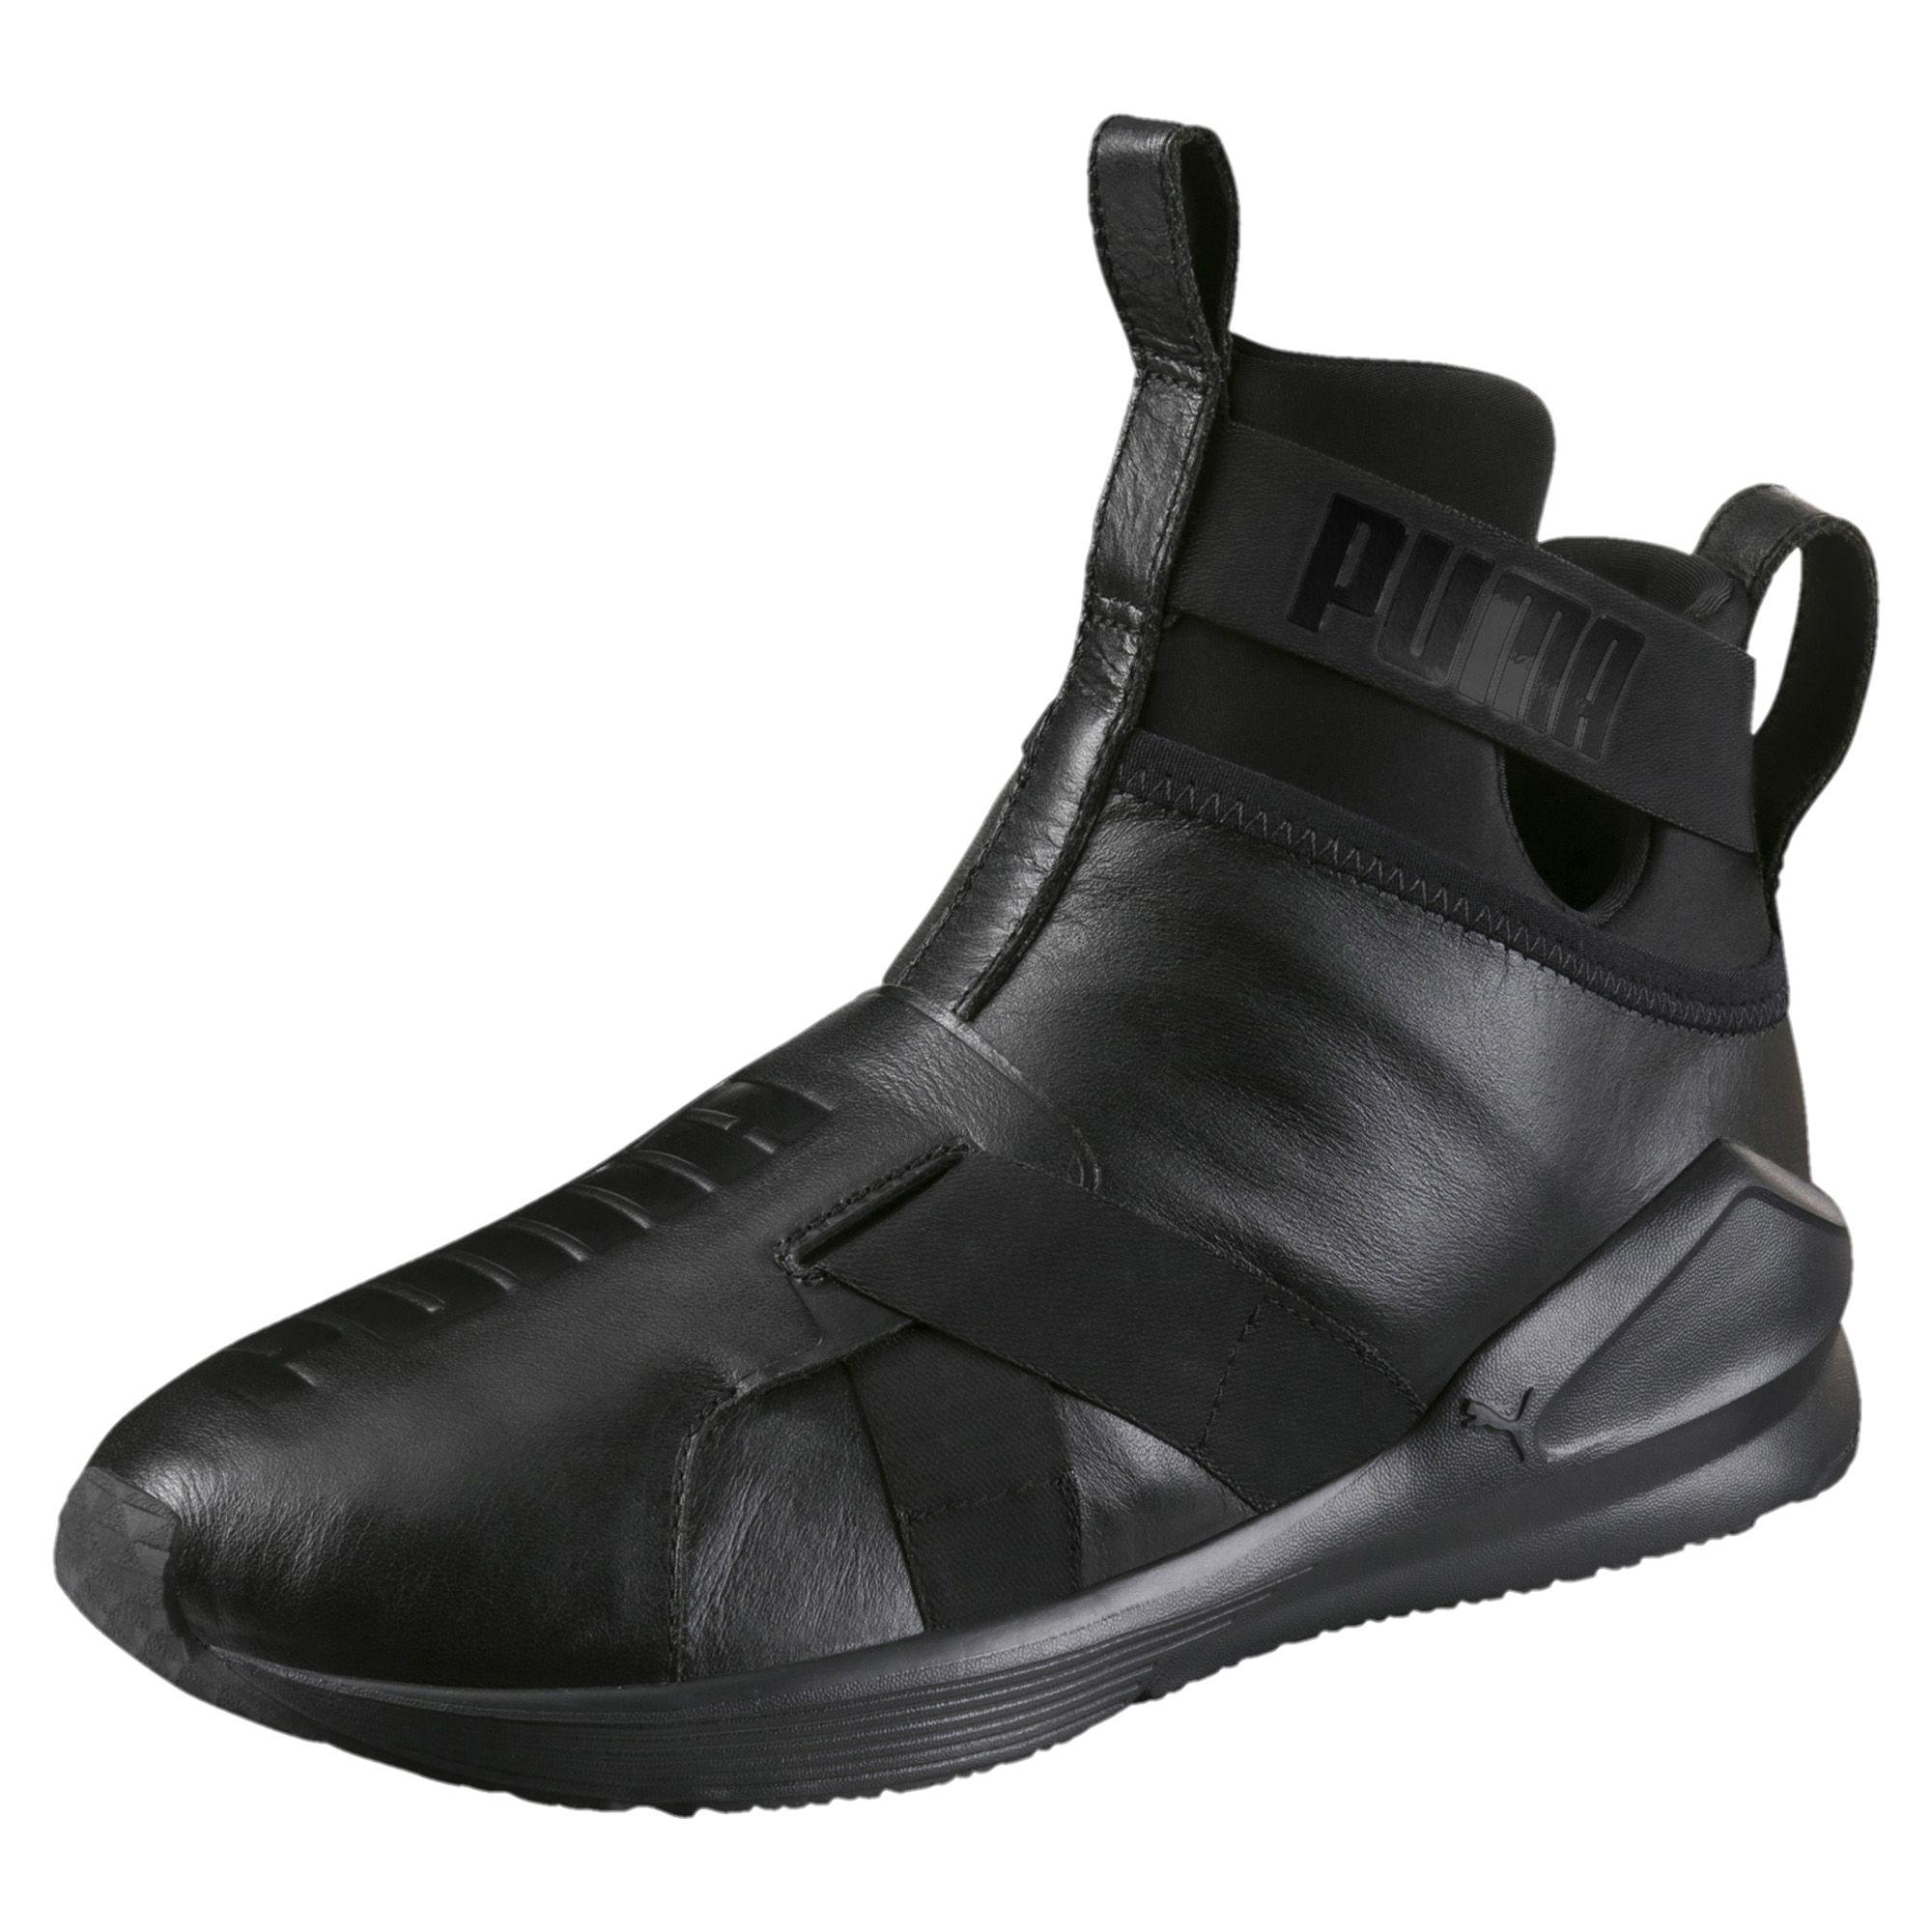 Wählen Sie für neueste moderate Kosten am besten authentisch Fierce Strap Leather Women's Training Shoes